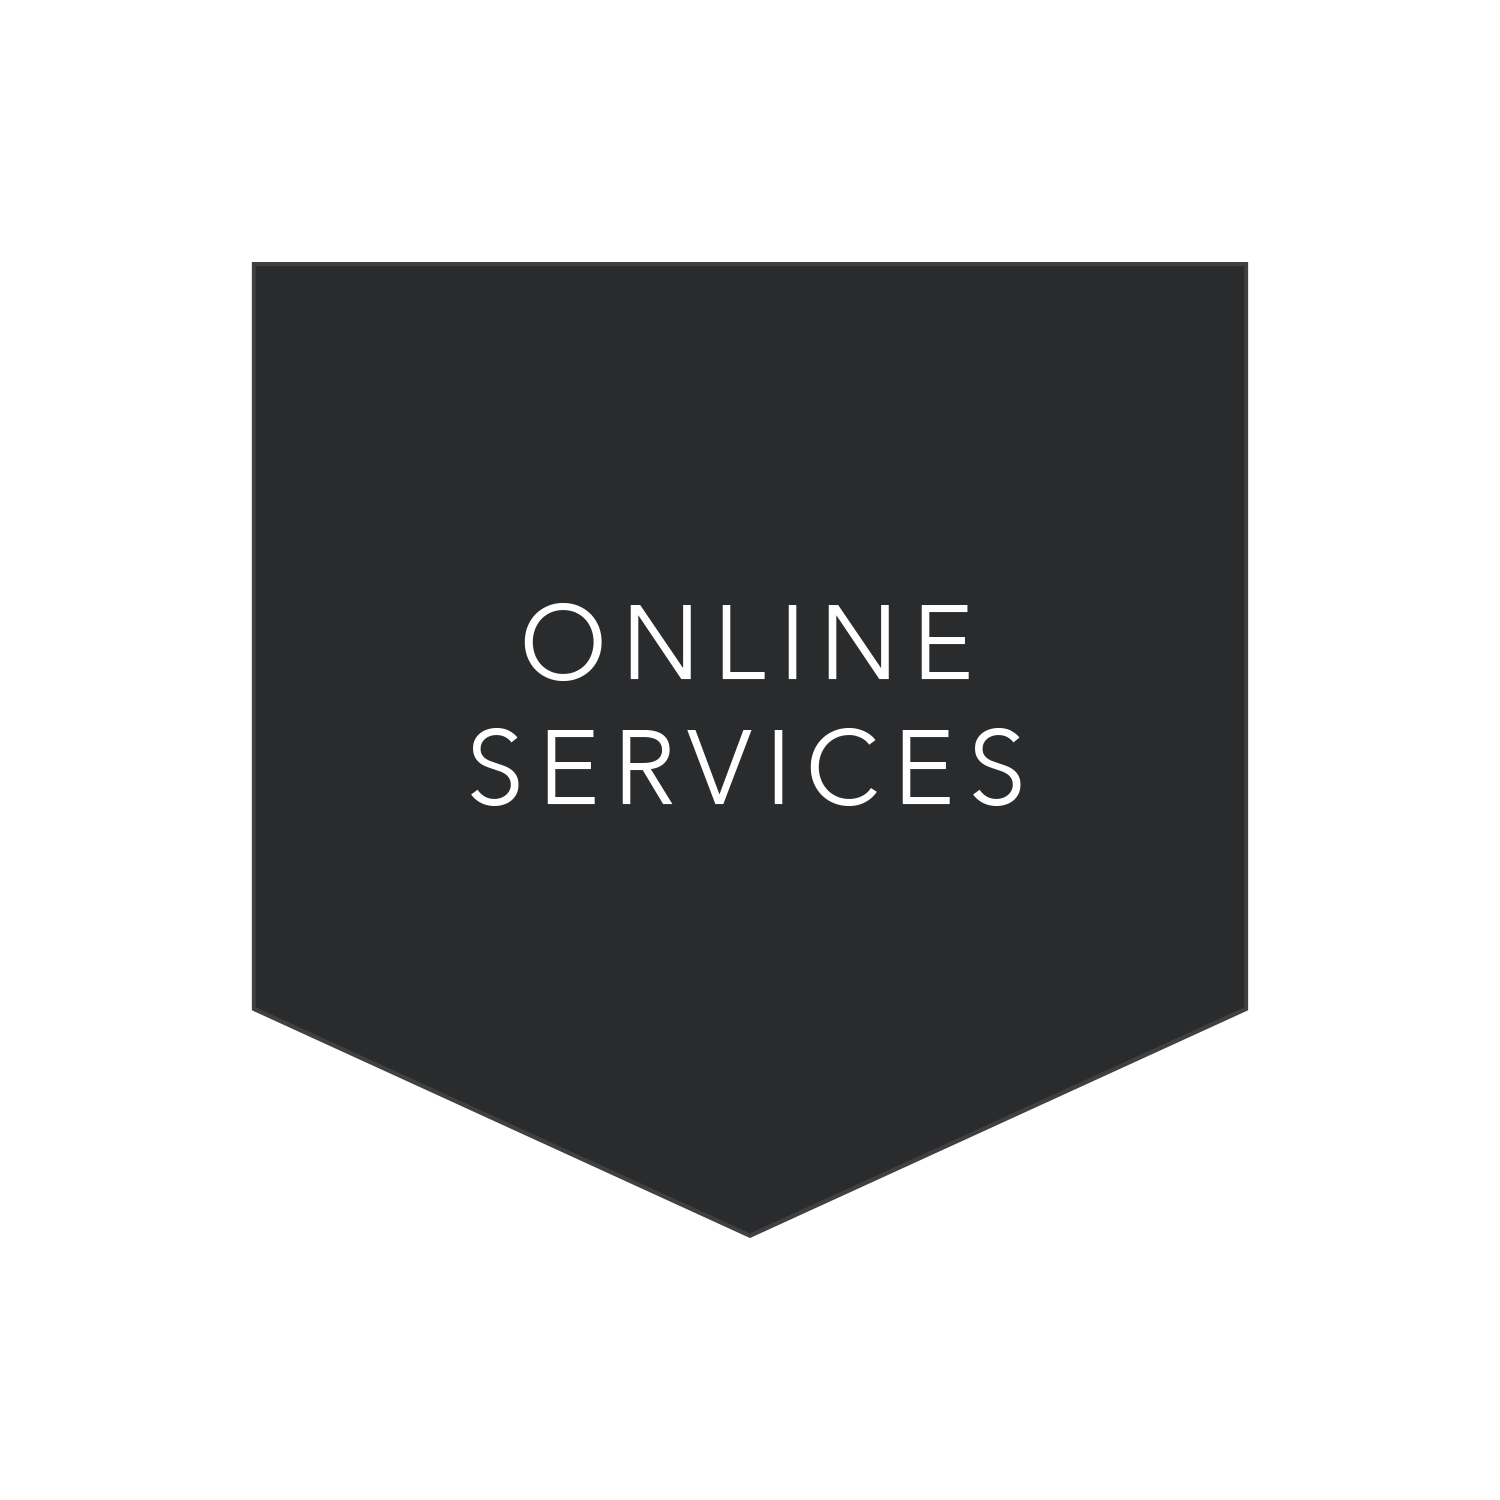 ONLINESERVICES.WEB